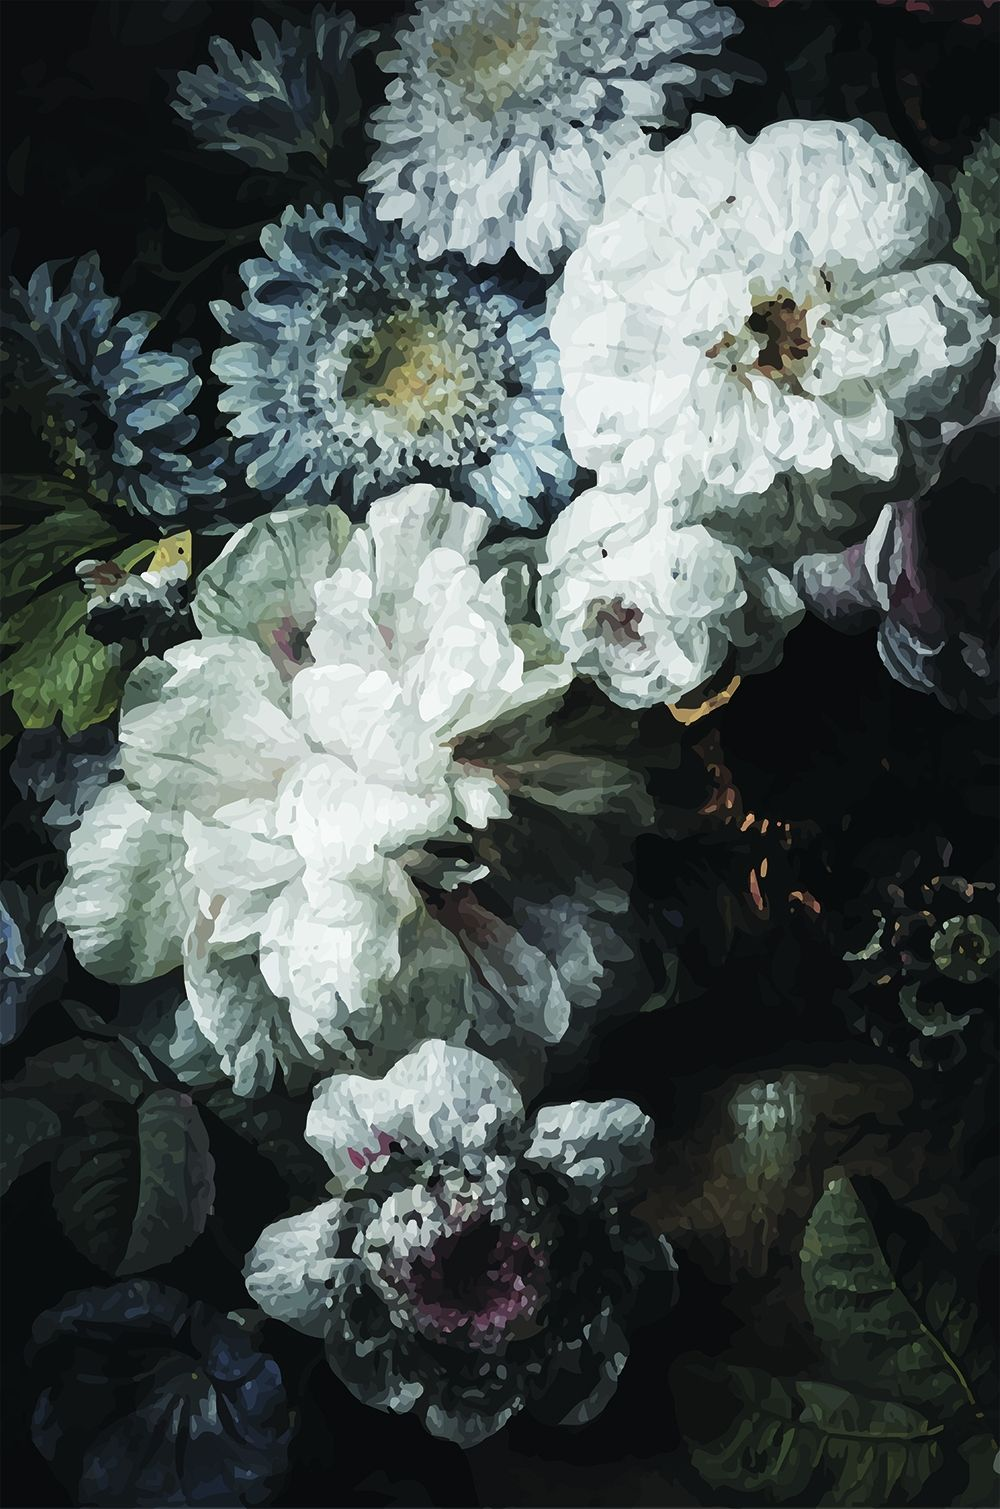 Dark Floral Wallpaper Vintage Floral Wallpapers Dark Flowers